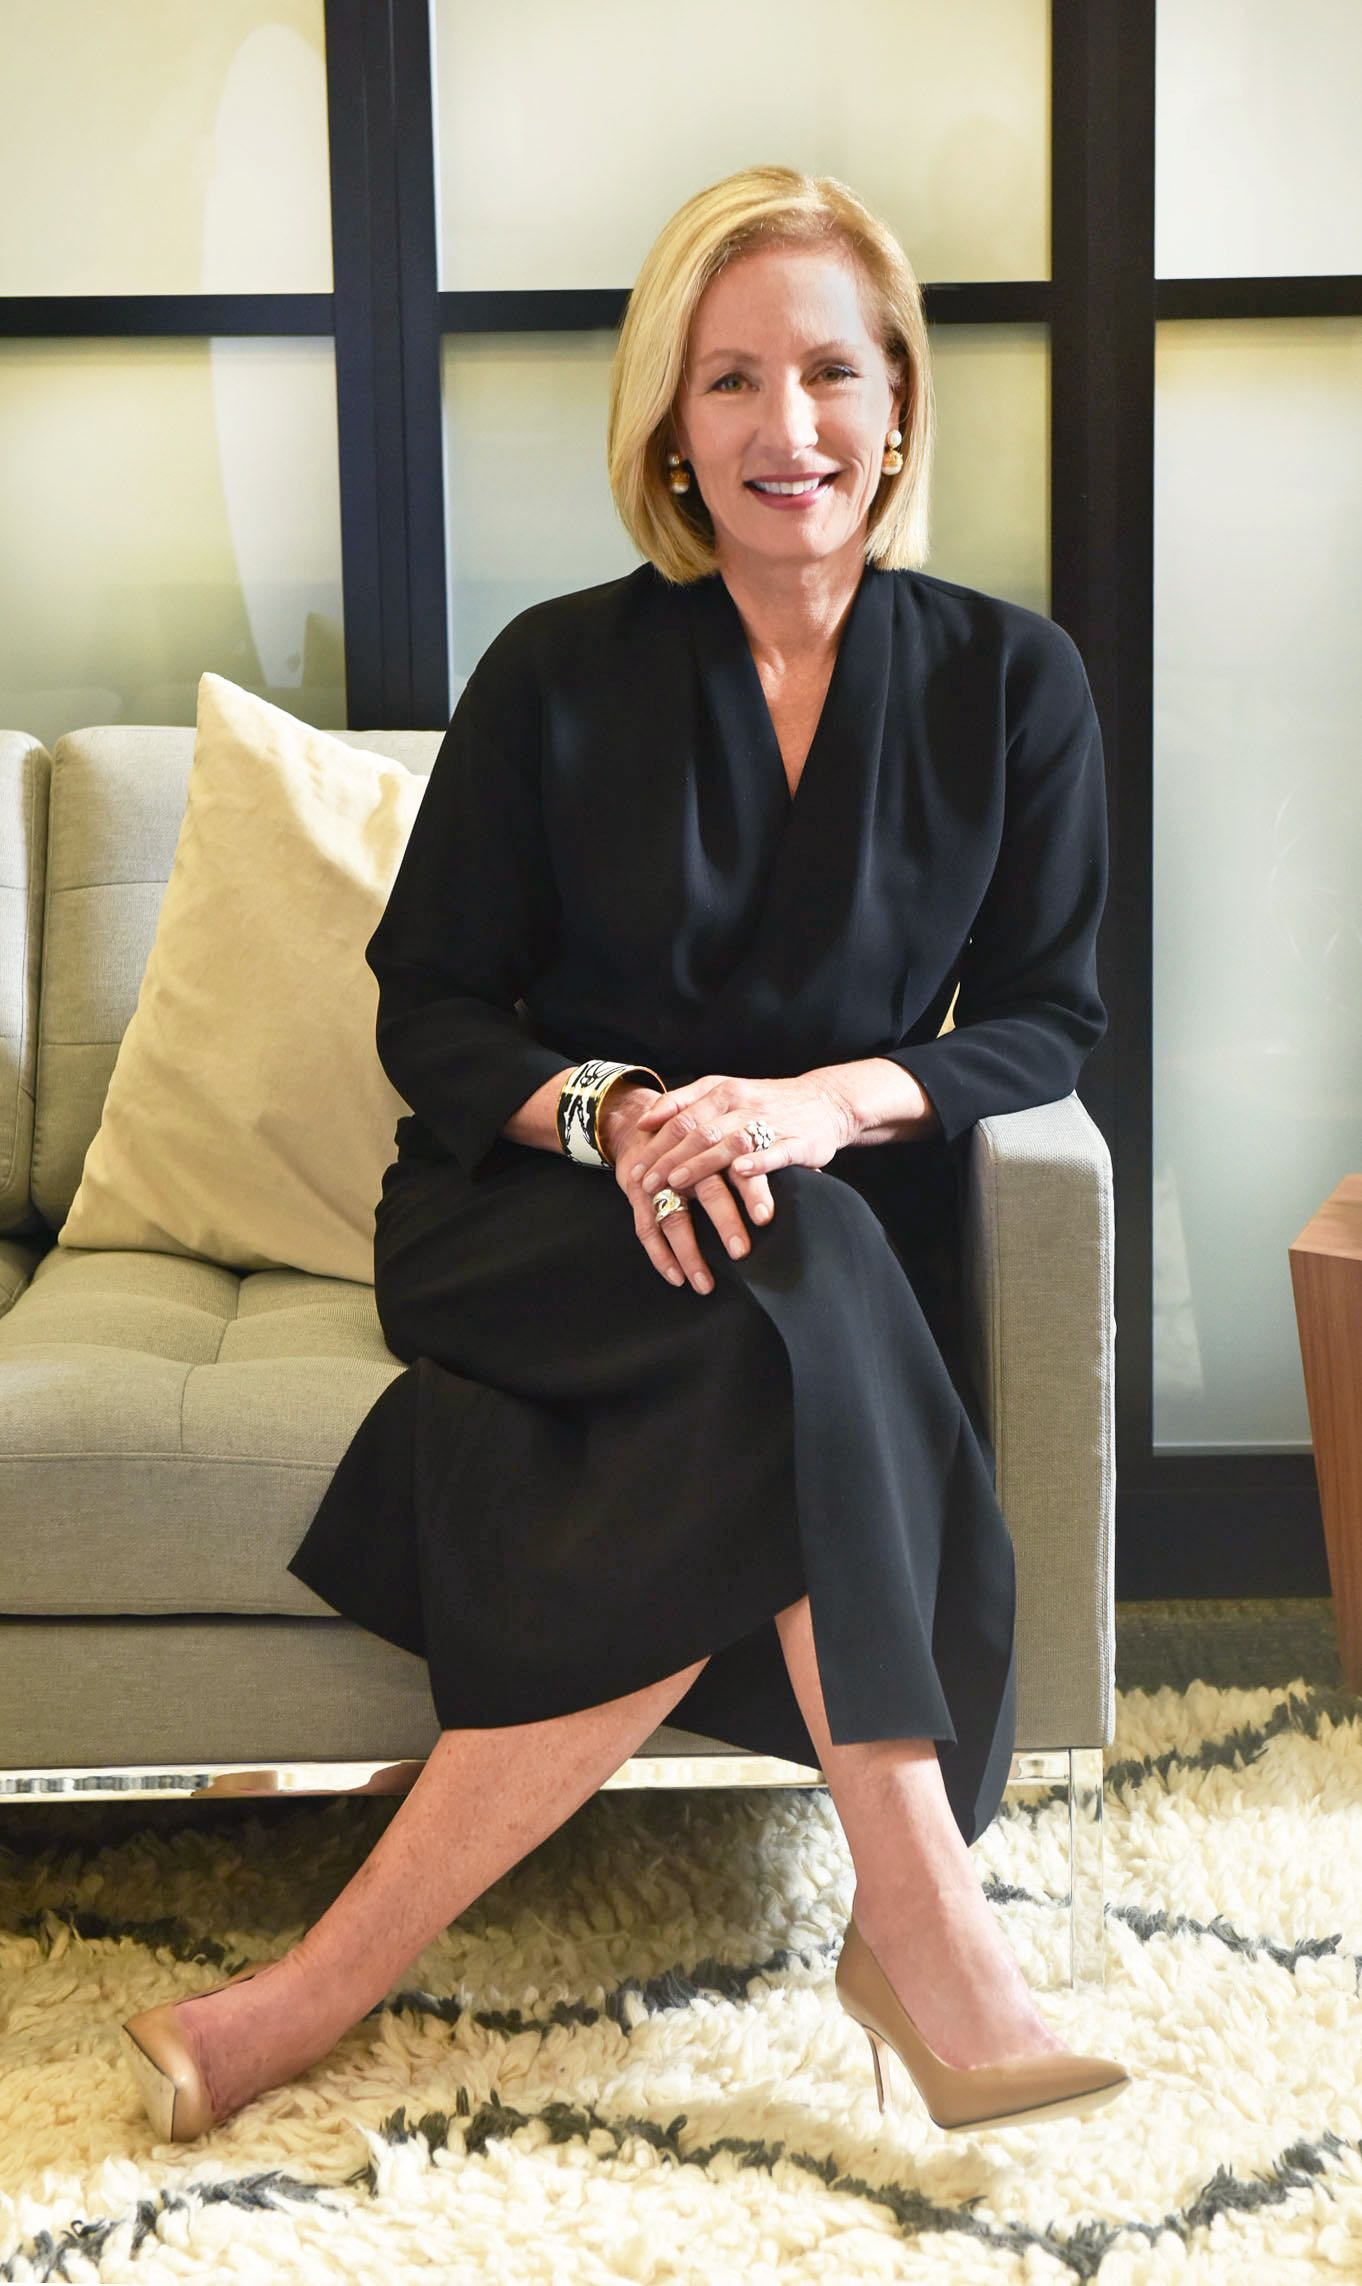 Diane Sullivan, CEO, President and Chairman of the Board, Caleres